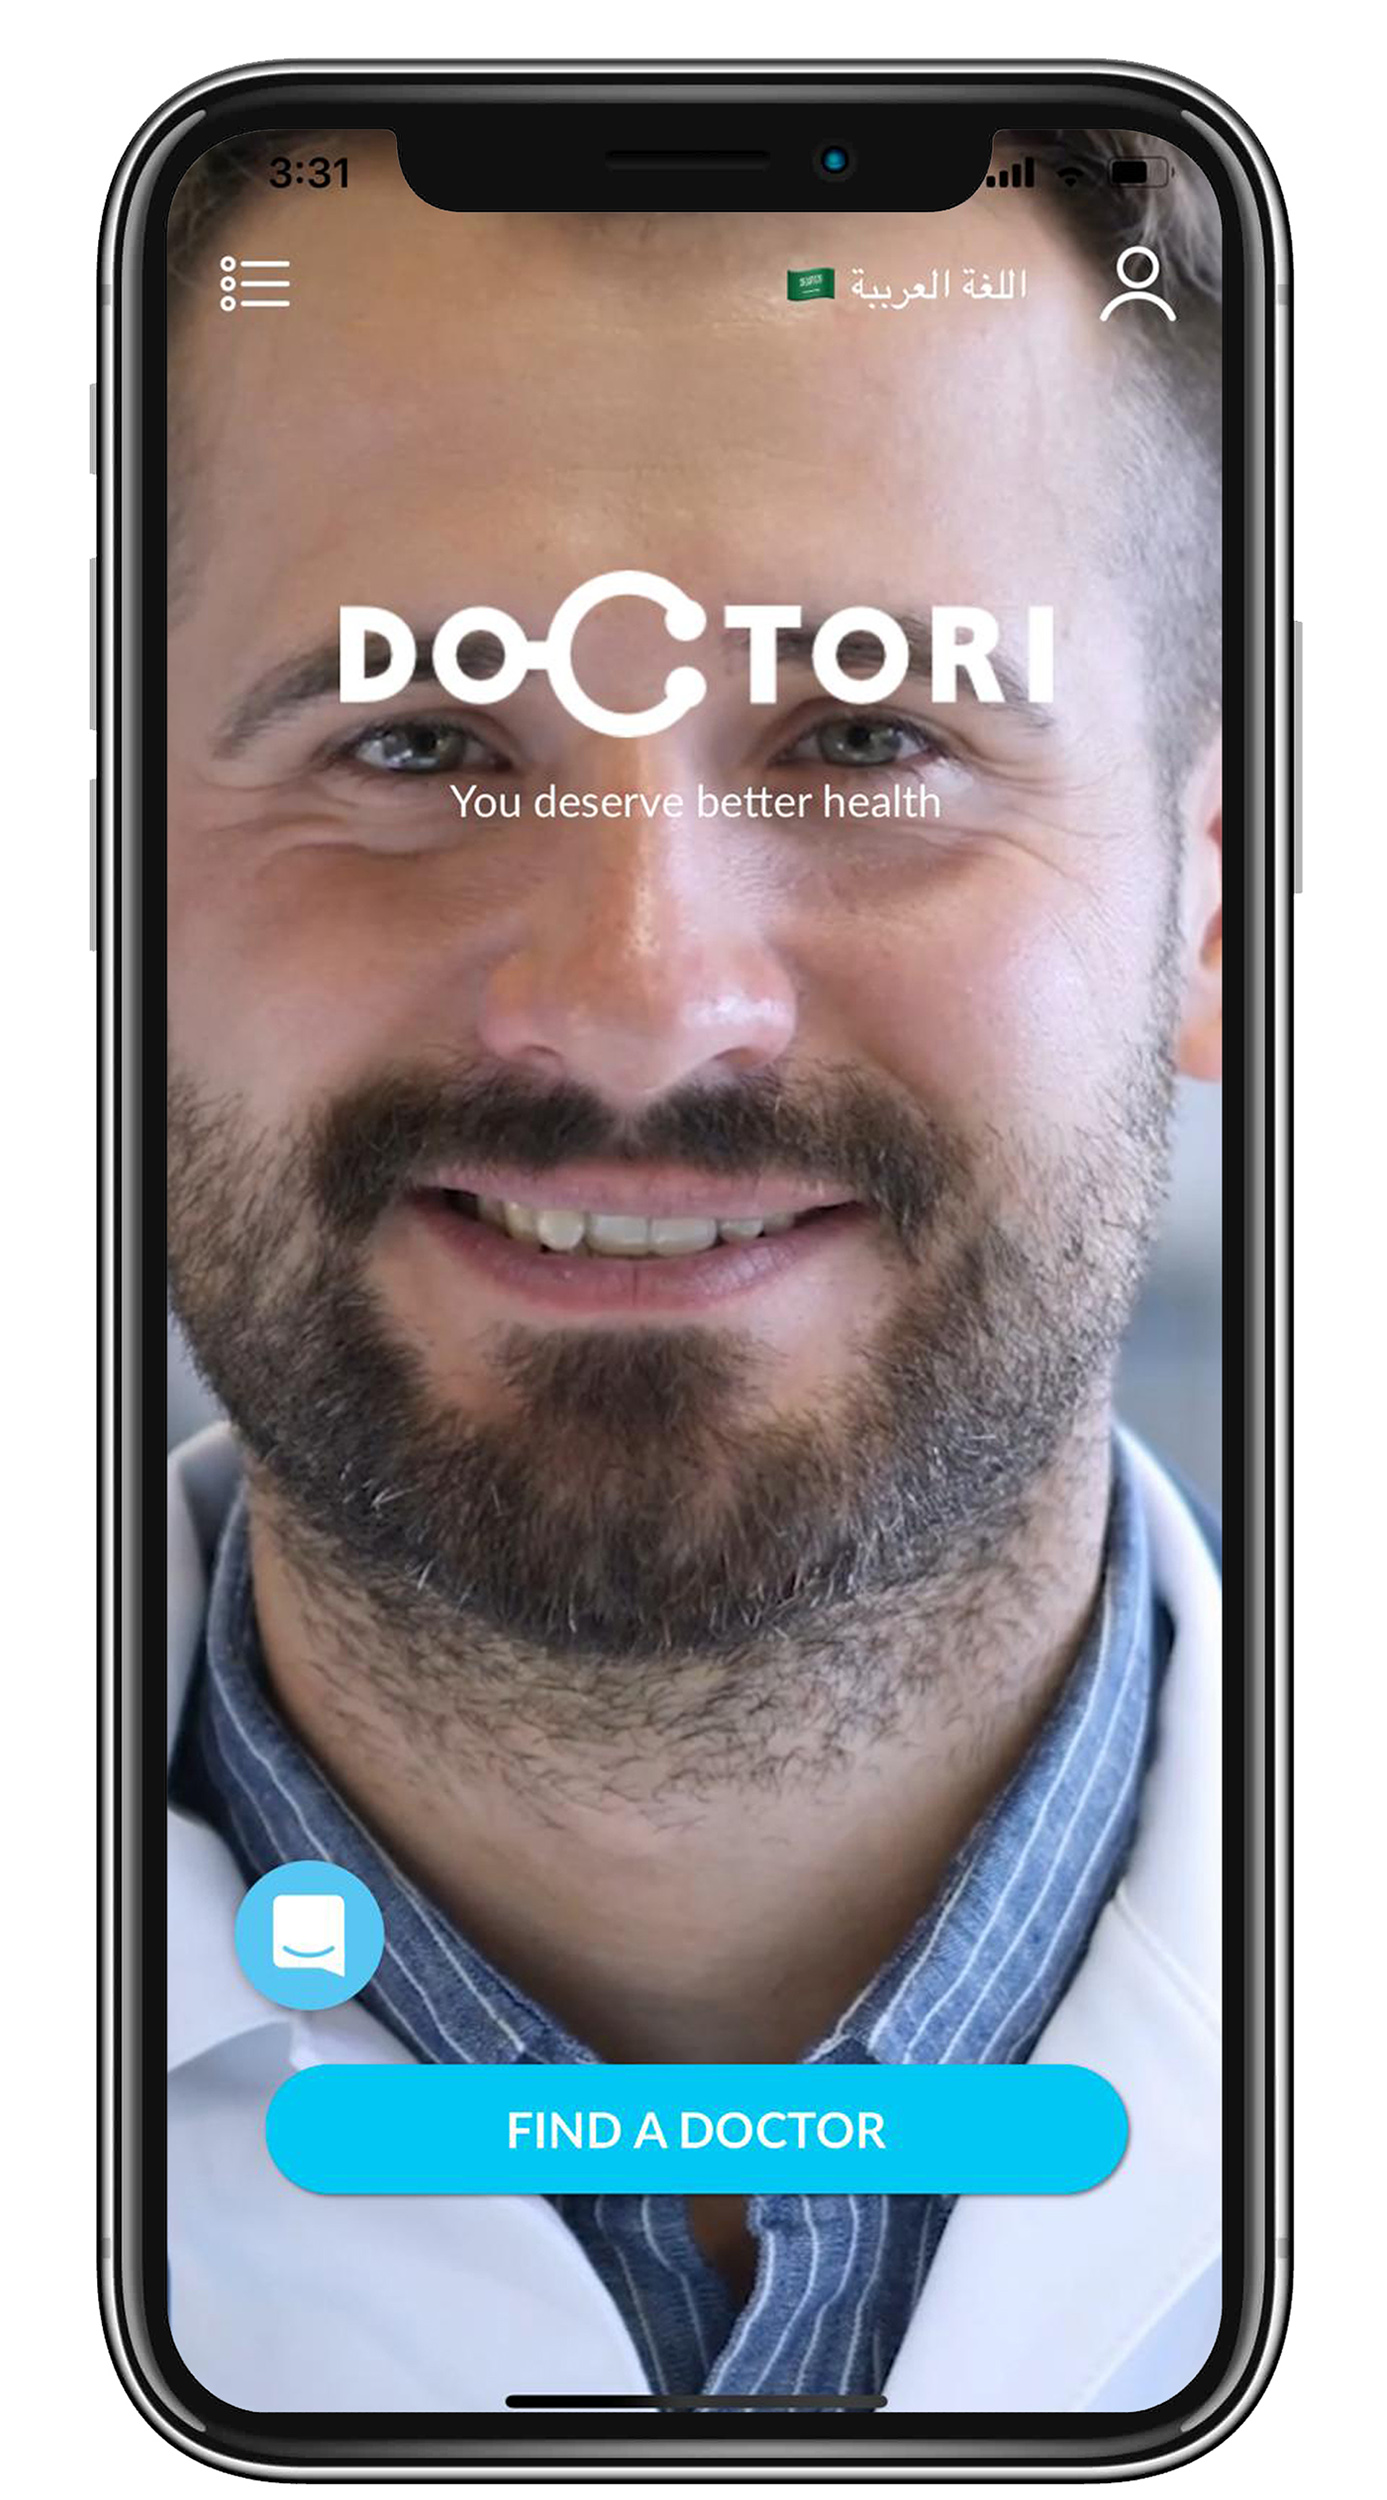 Find doctors button will list all doctors. Top right button in your profile. Top left button is your consultation history reports.